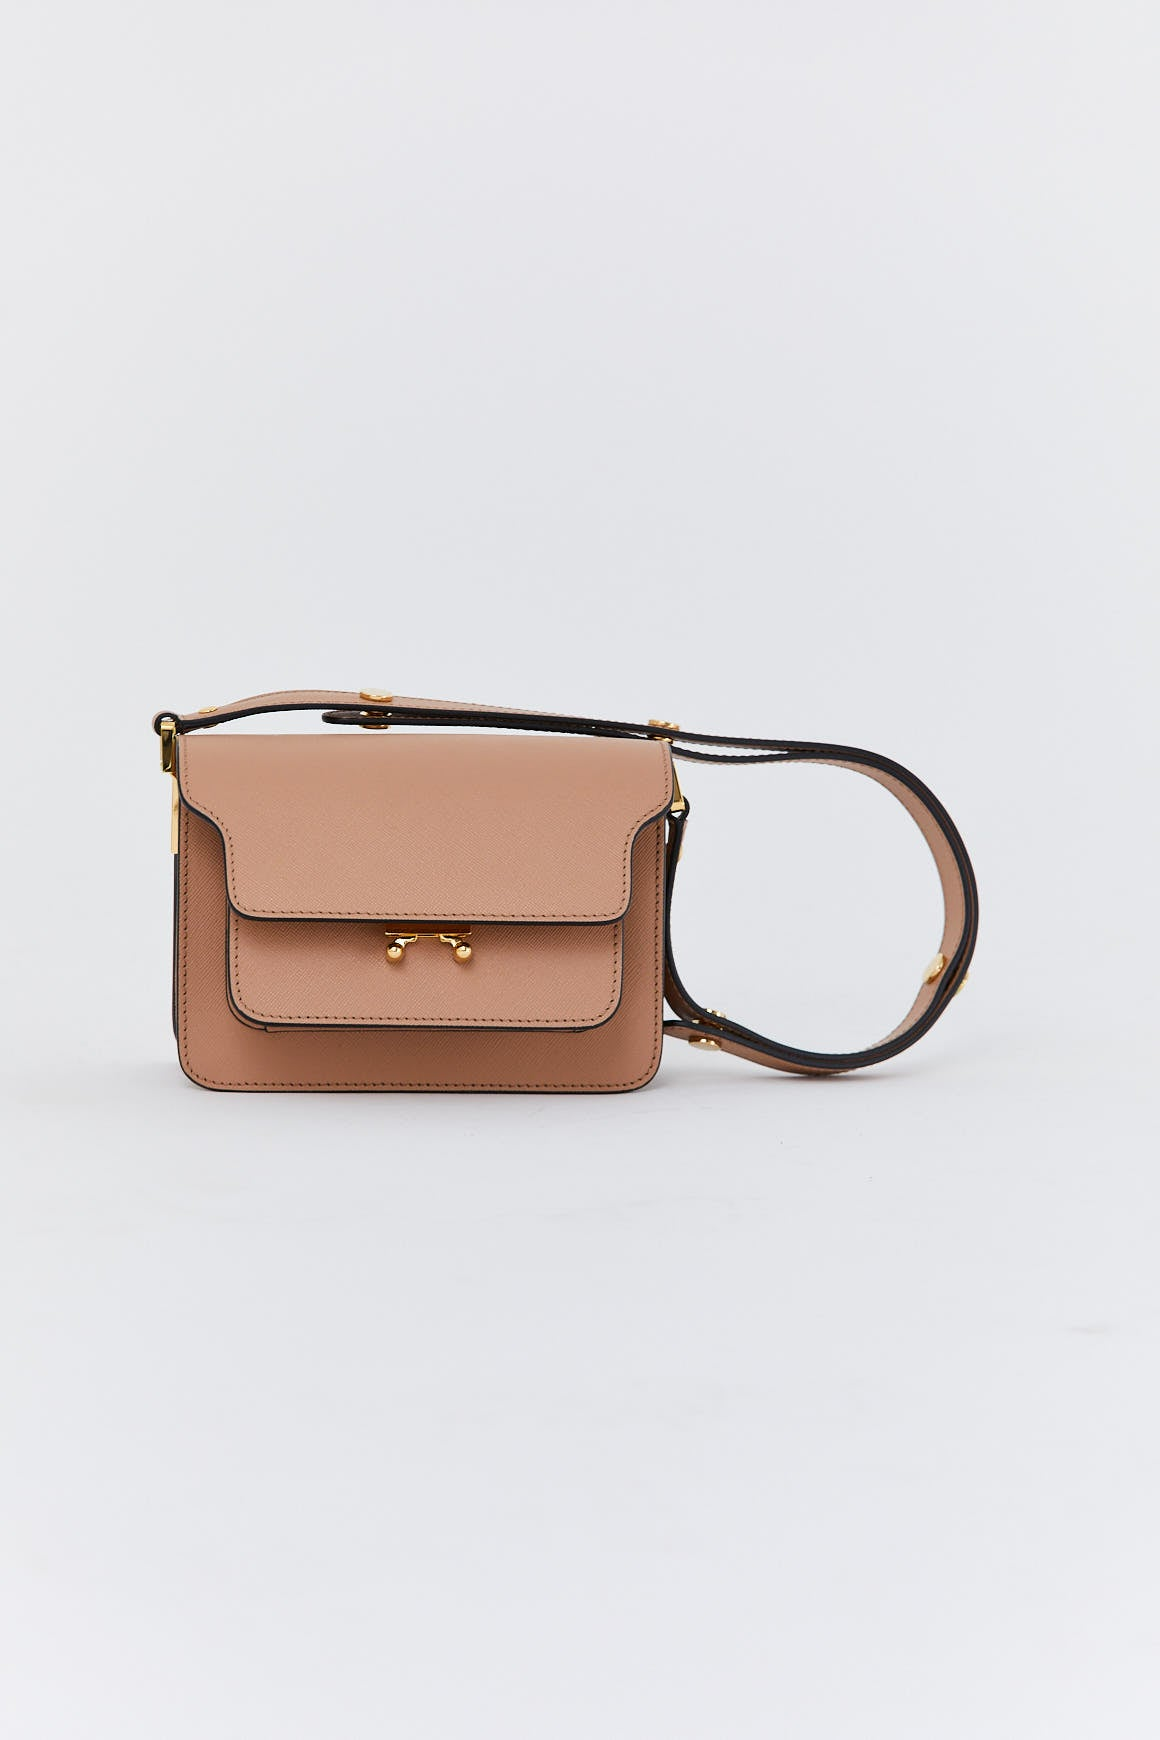 MARNI - shoulder bag, brown